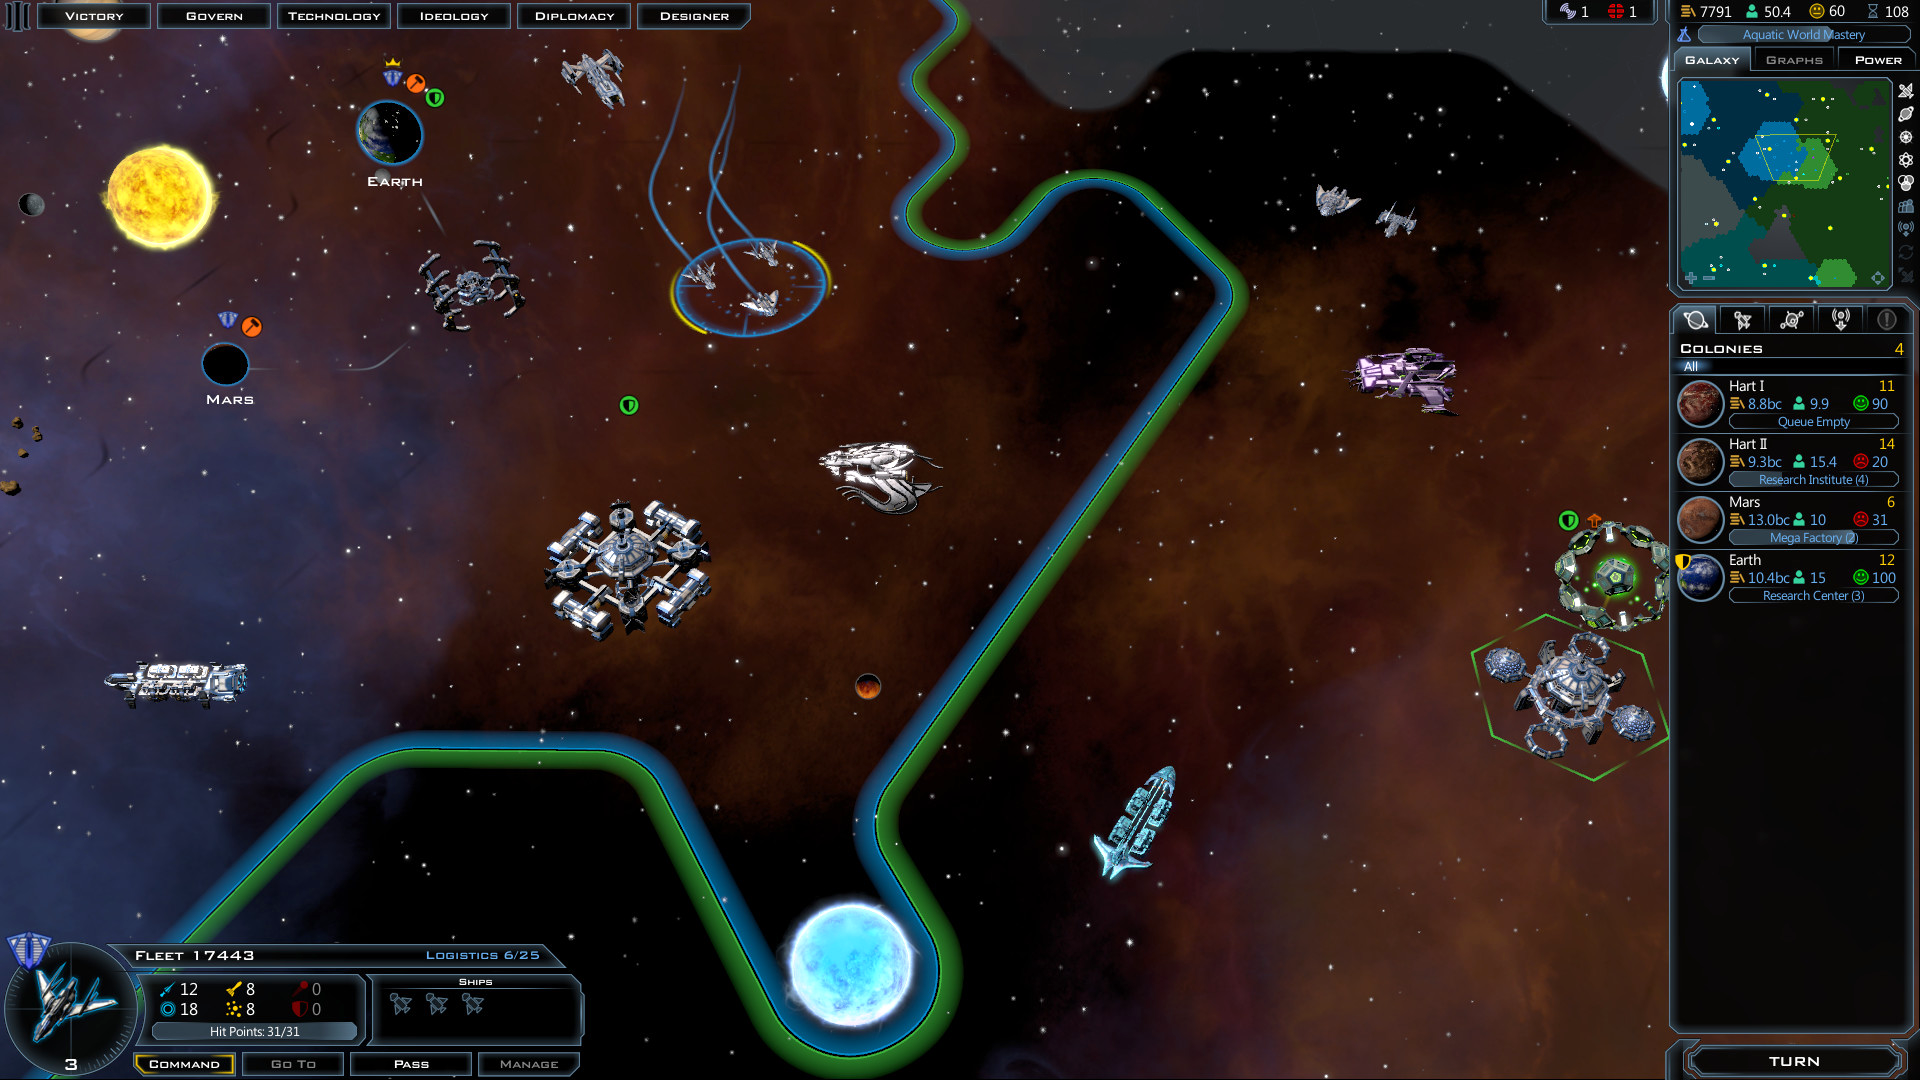 Galactic Civilizations III full game free pc, download, play